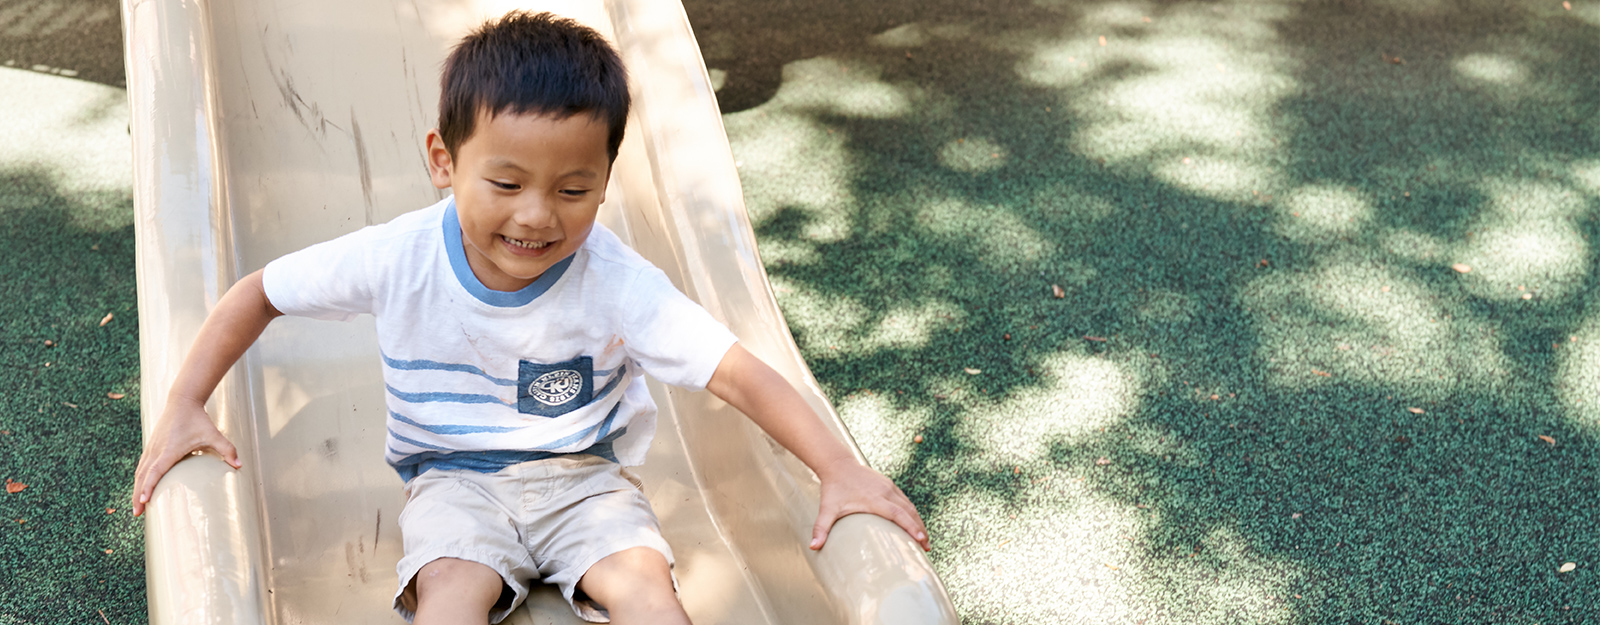 boy sliding on playground